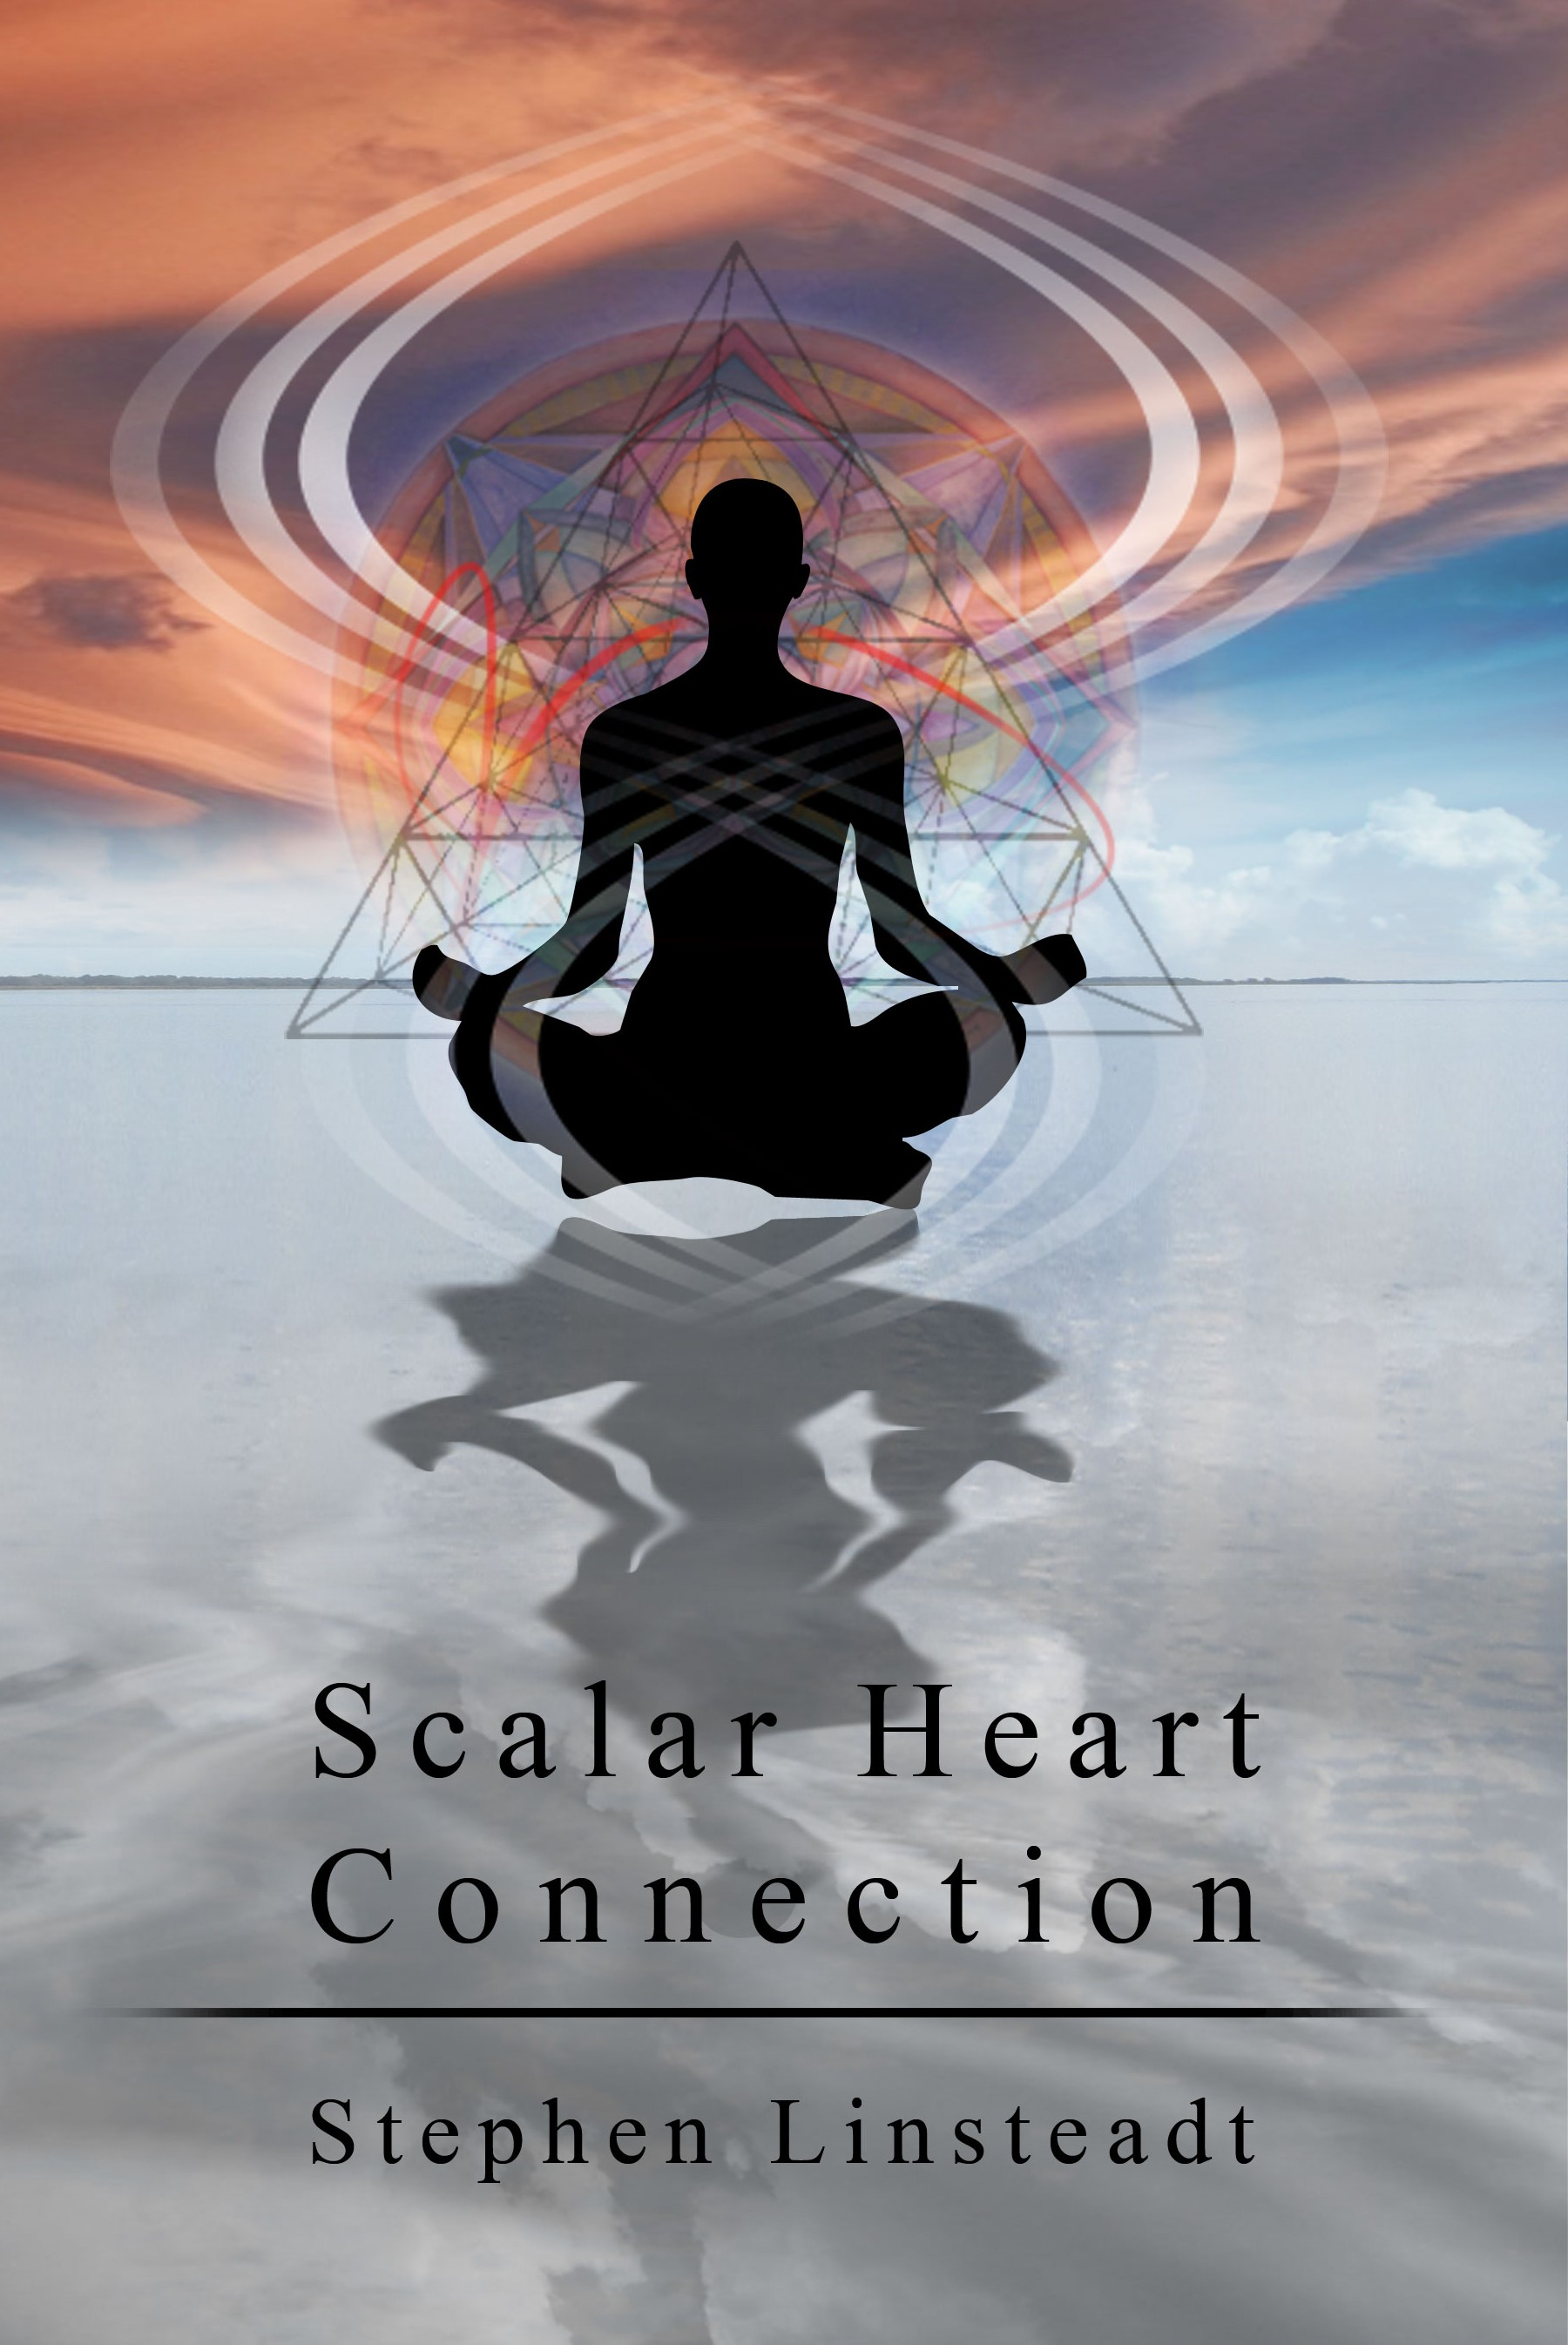 scalar heart connection book stephen linsteadt